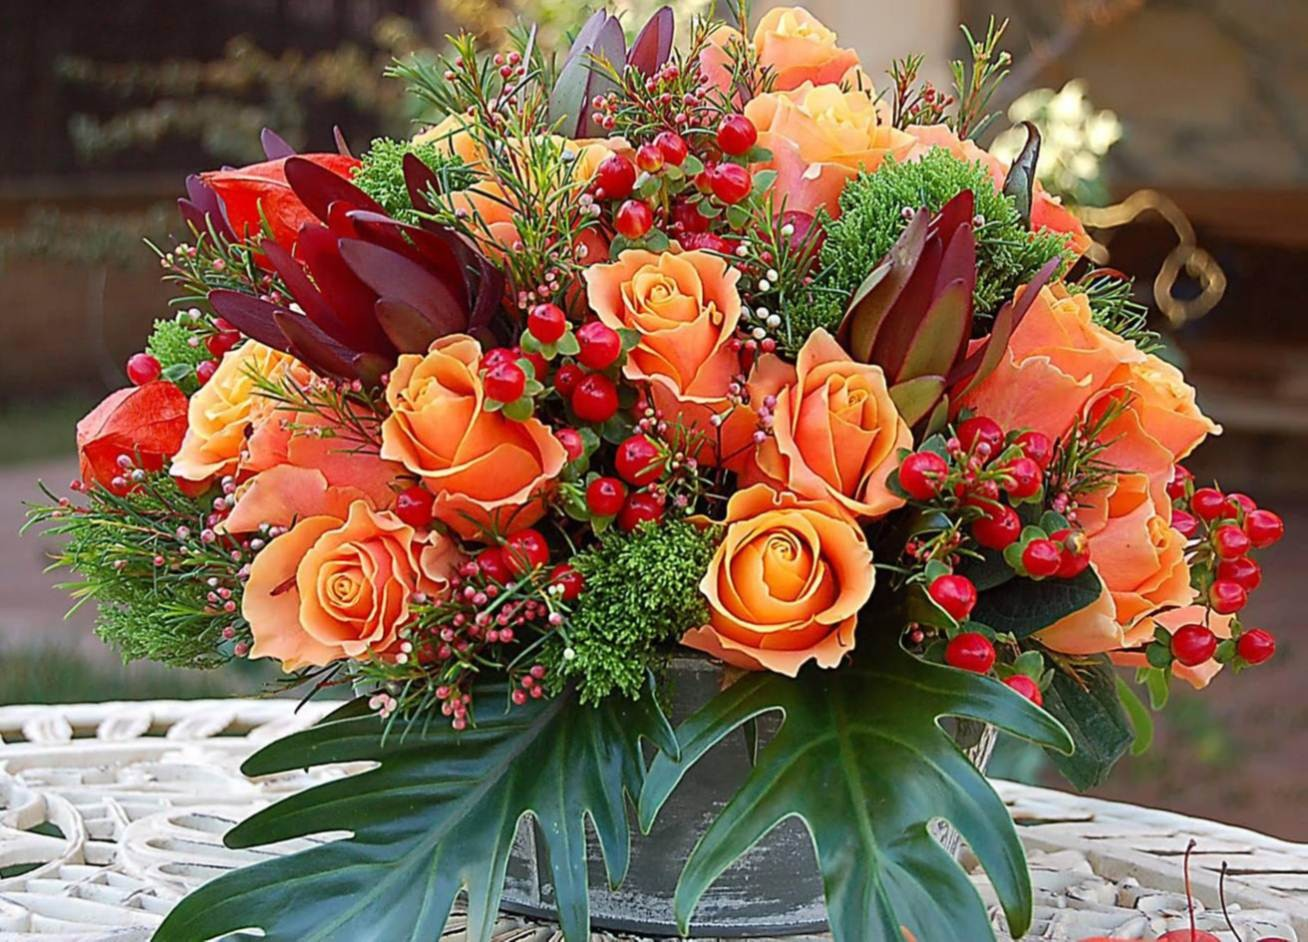 autumn wedding trend, autumn wedding flowers, autumn wedding ideas,